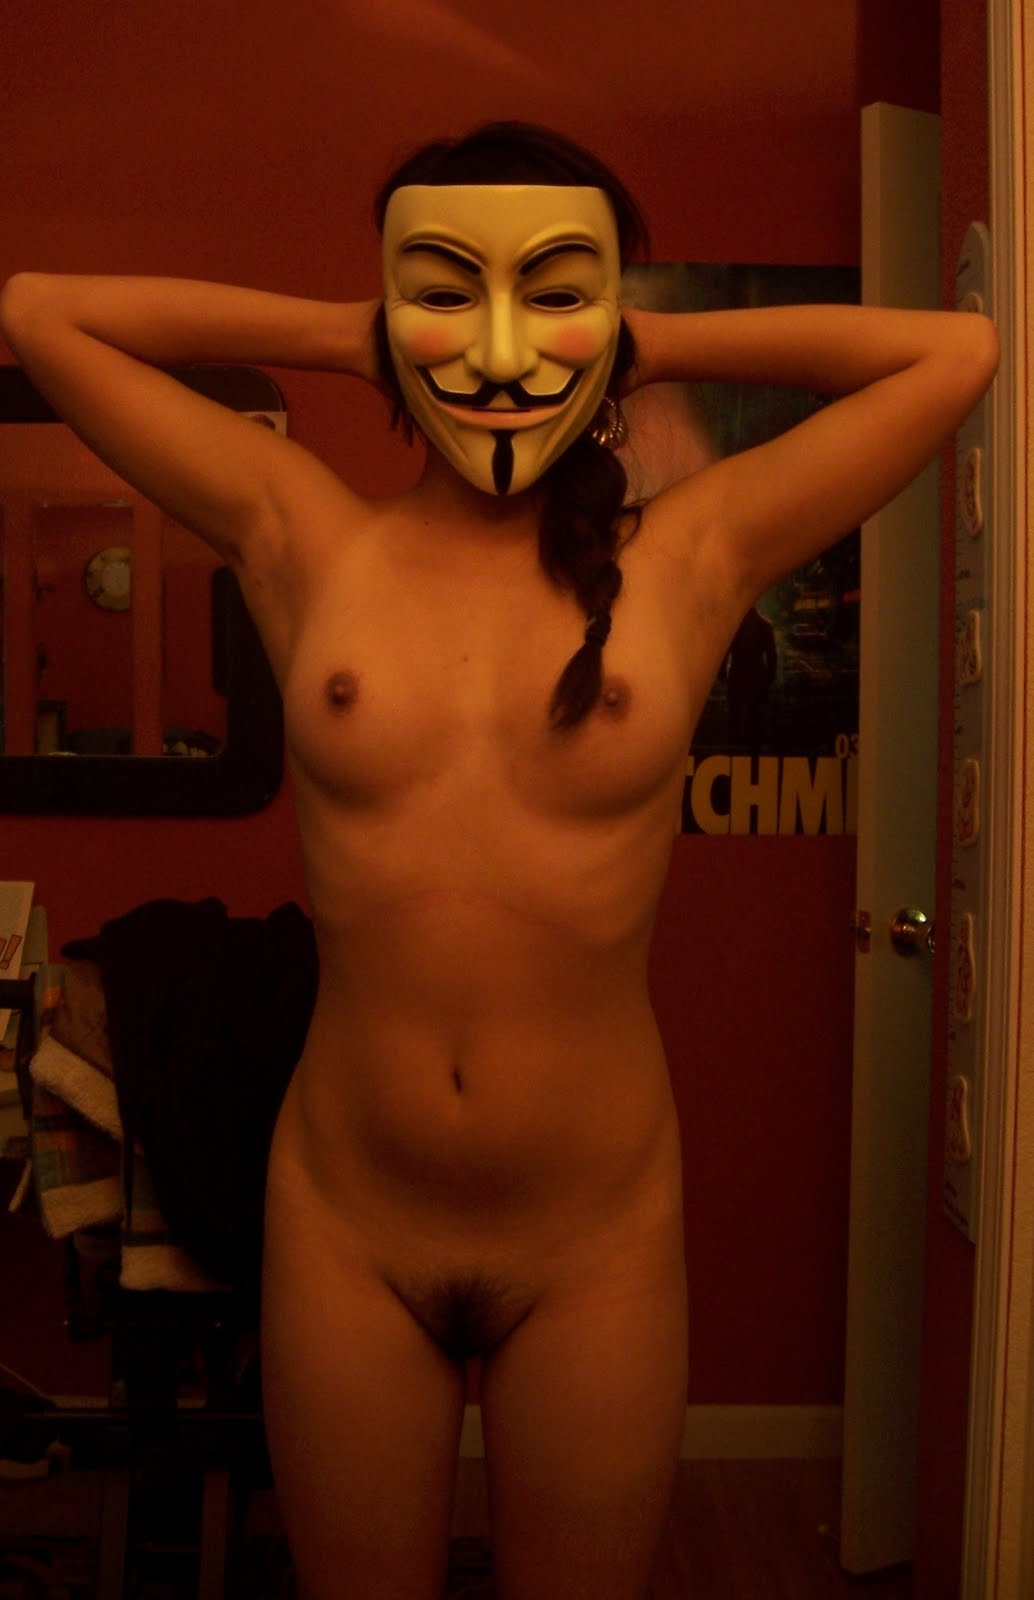 Hot Chick With Guy Fawkes Masks Not A Bunch Of Nude Pictures